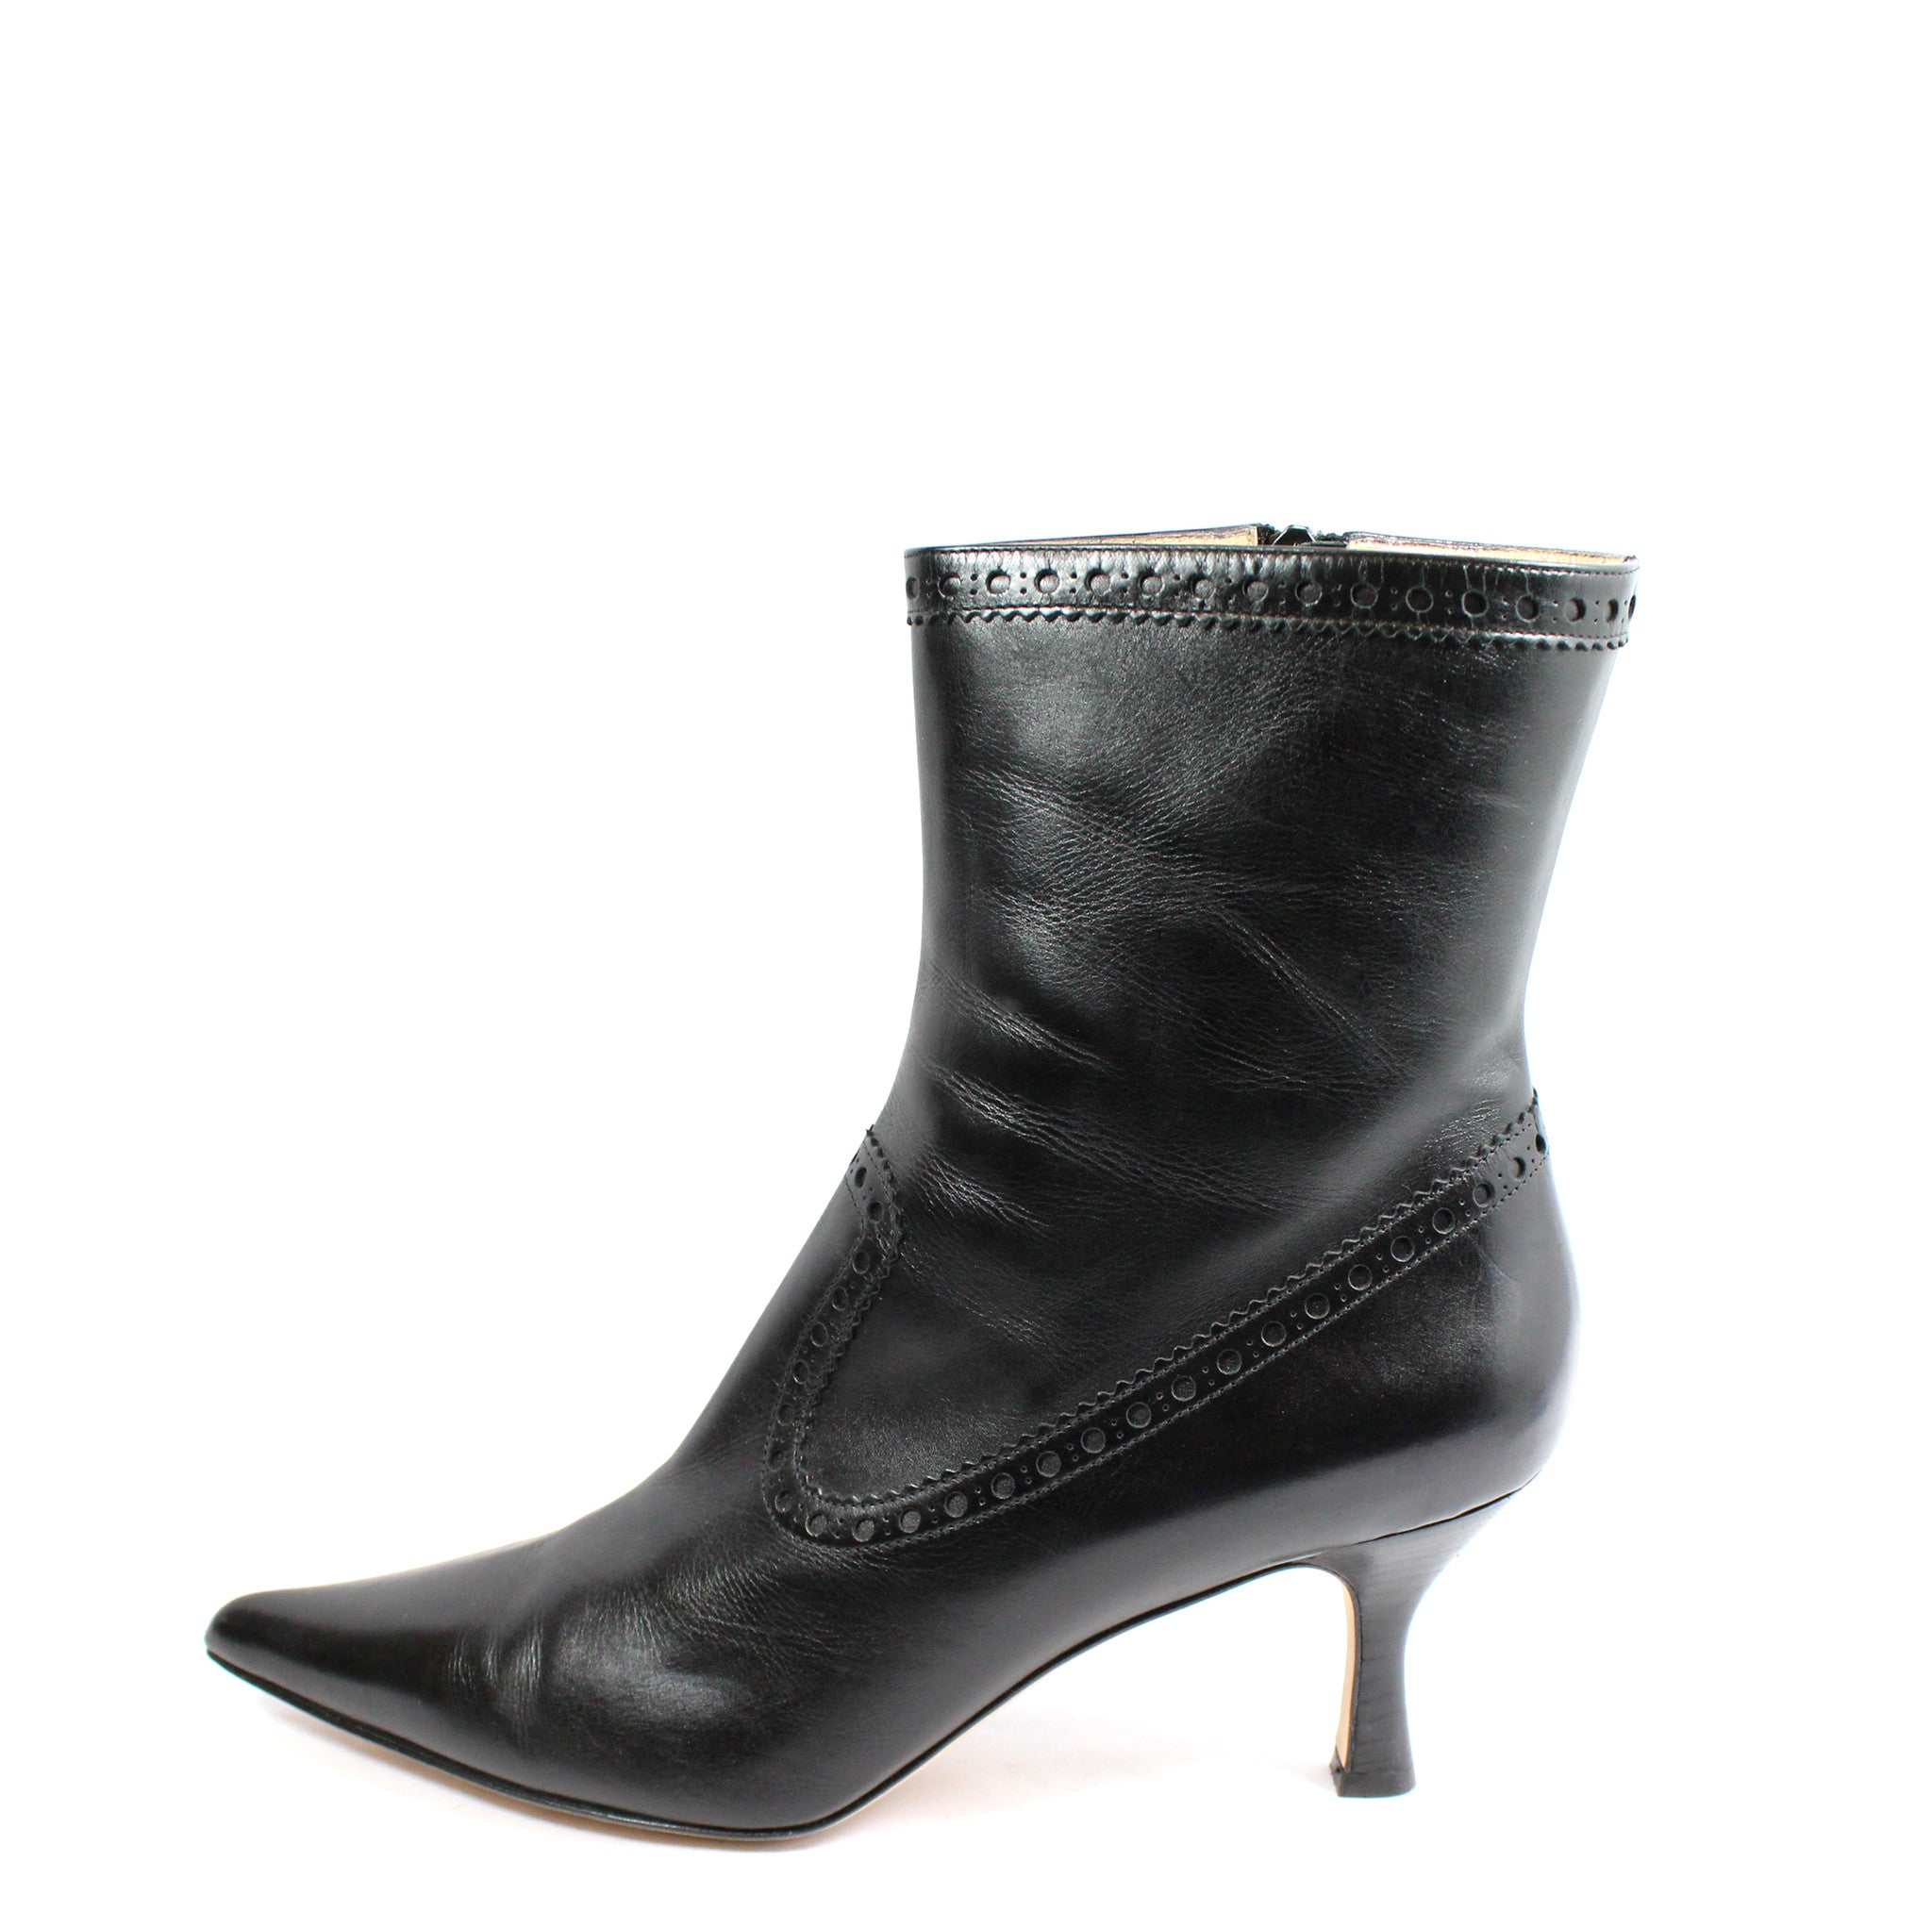 Michael Kors Perforated Leather Ankle Boots (Size 11) - Encore Consignment - 15